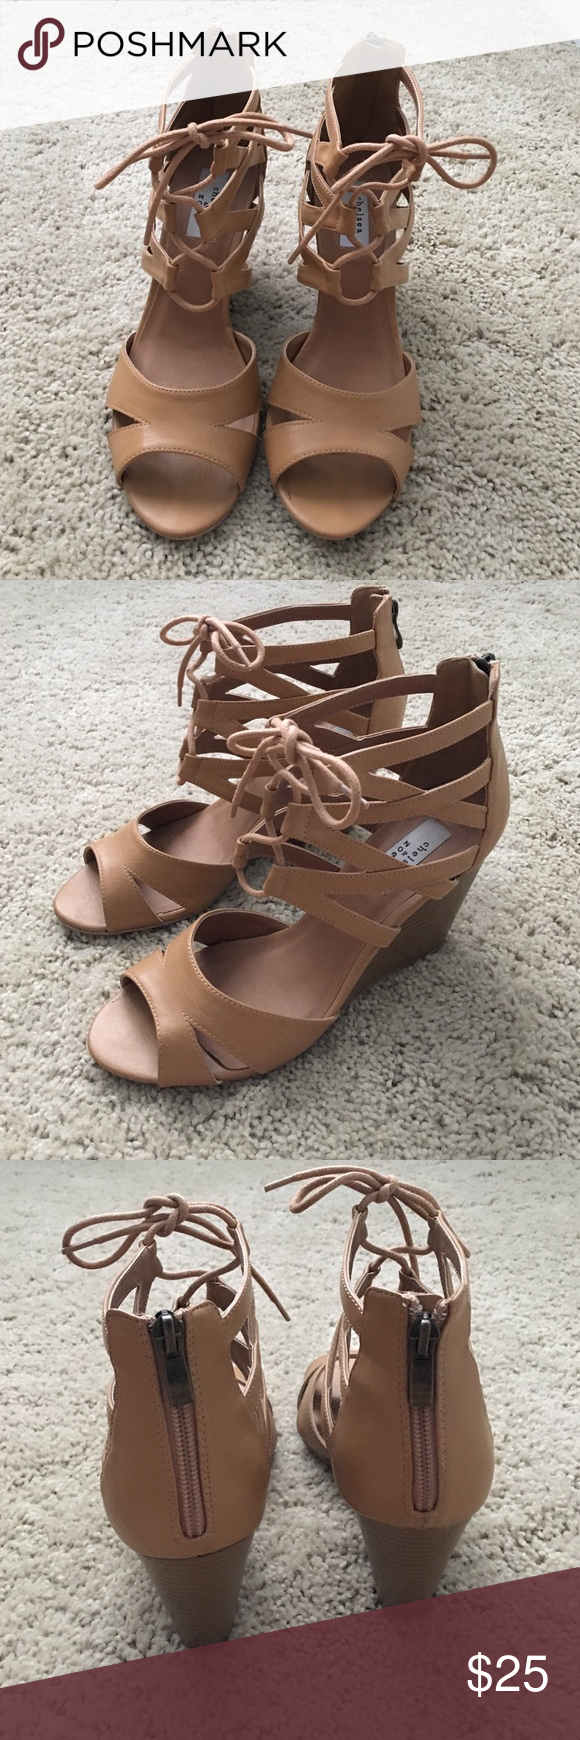 Chelsea & Zoe heels Like new condition! Only worn a couple of times Chelsea & Zoe Shoes Heels